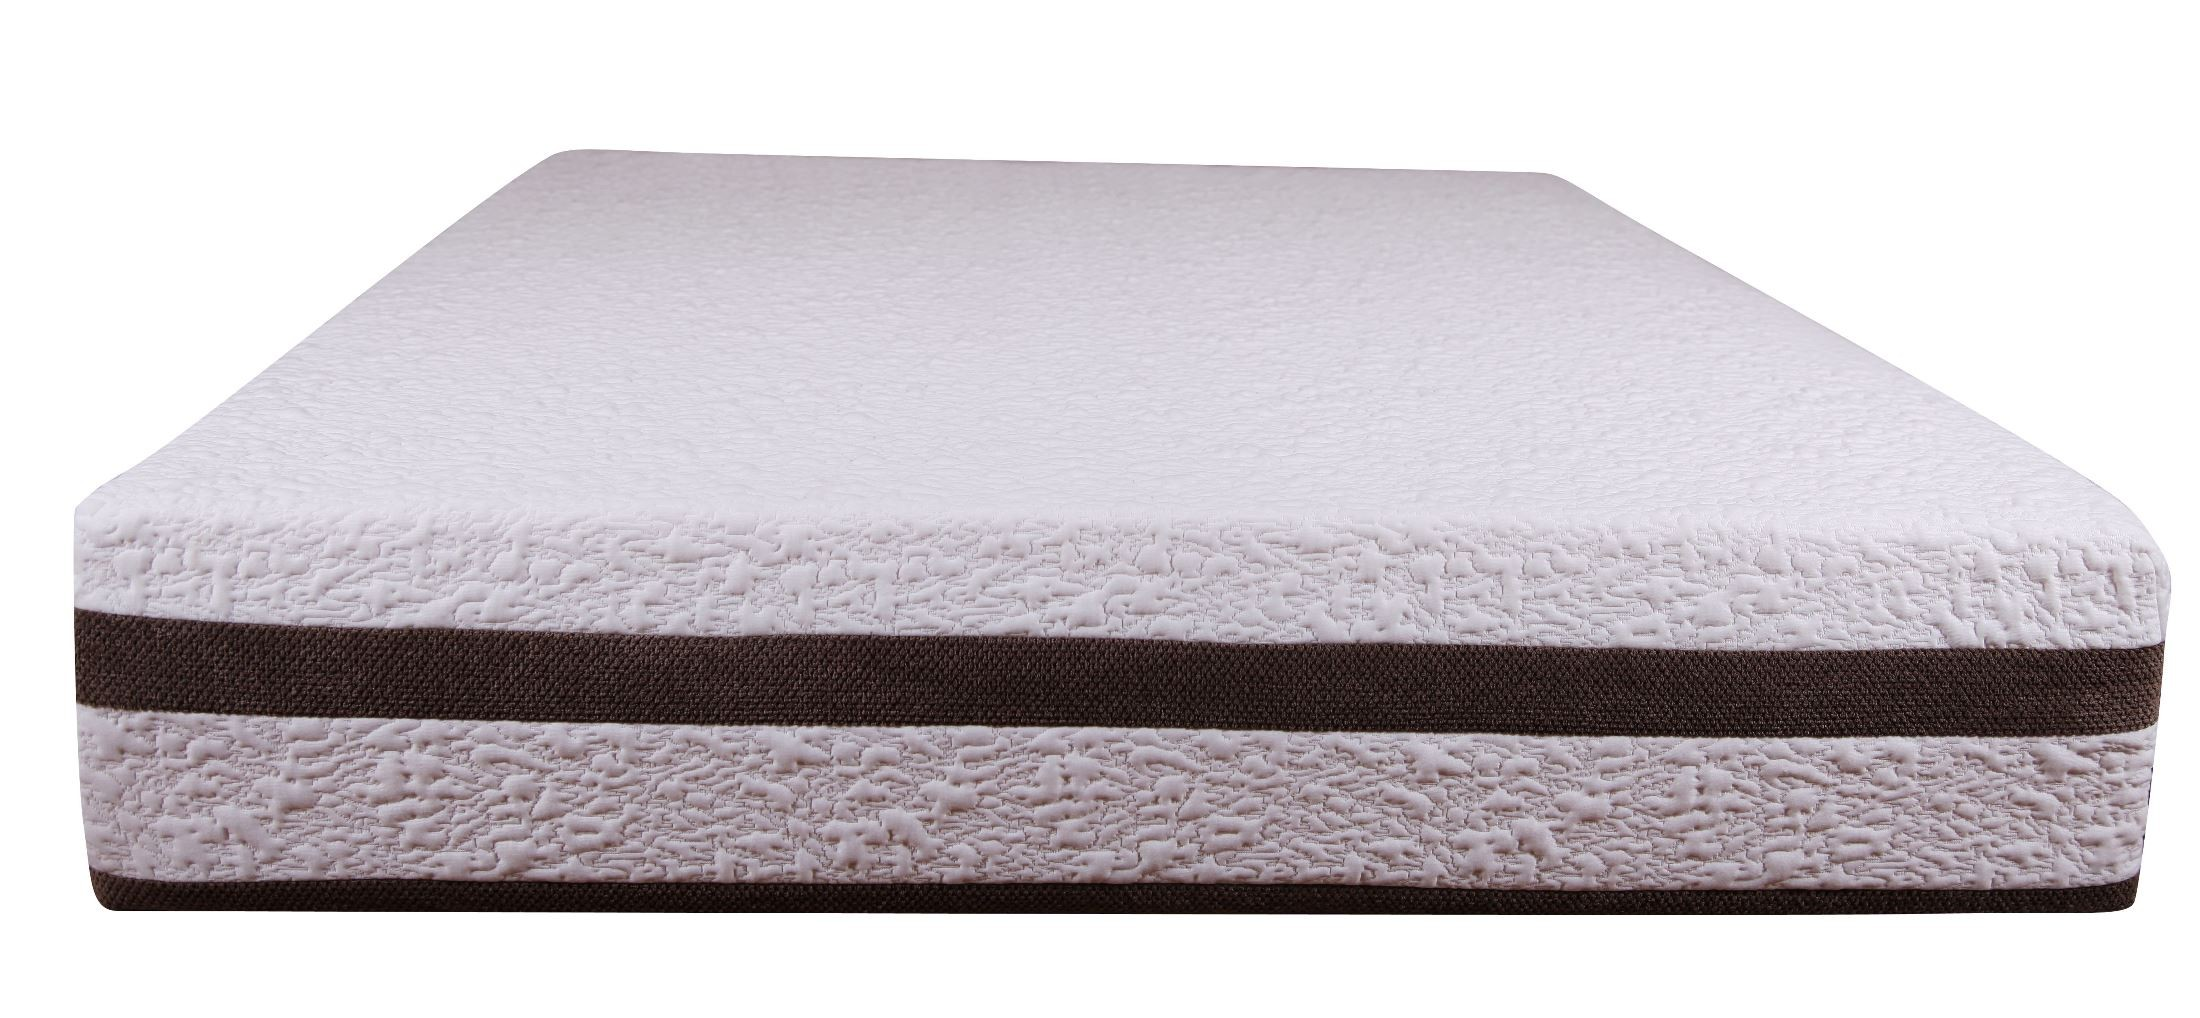 Nova 11 5 memory foam king size mattress from klaussner novakkmat coleman furniture Memory foam king mattress